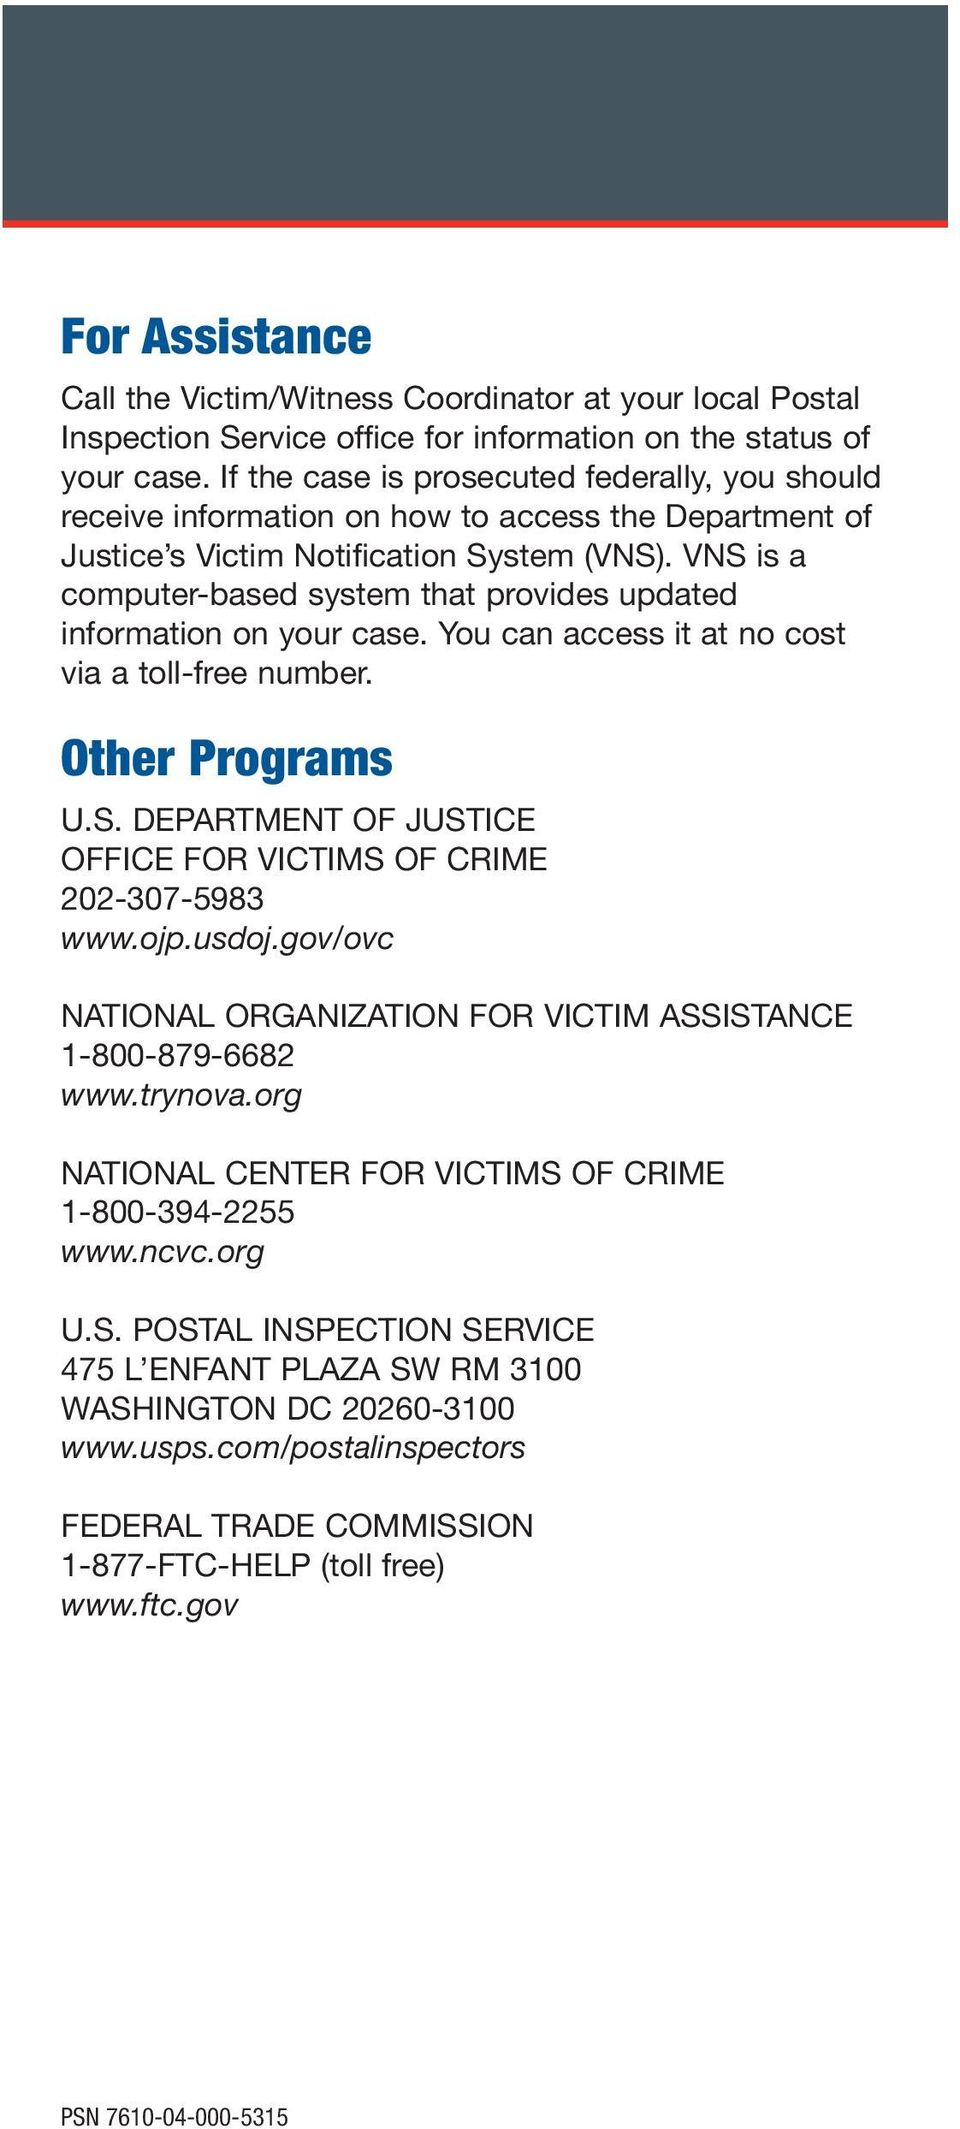 VNS is a computer-based system that provides updated information on your case. You can access it at no cost via a toll-free number. Other Programs U.S. DEPARTMENT OF JUSTICE OFFICE FOR VICTIMS OF CRIME 202-307-5983 www.